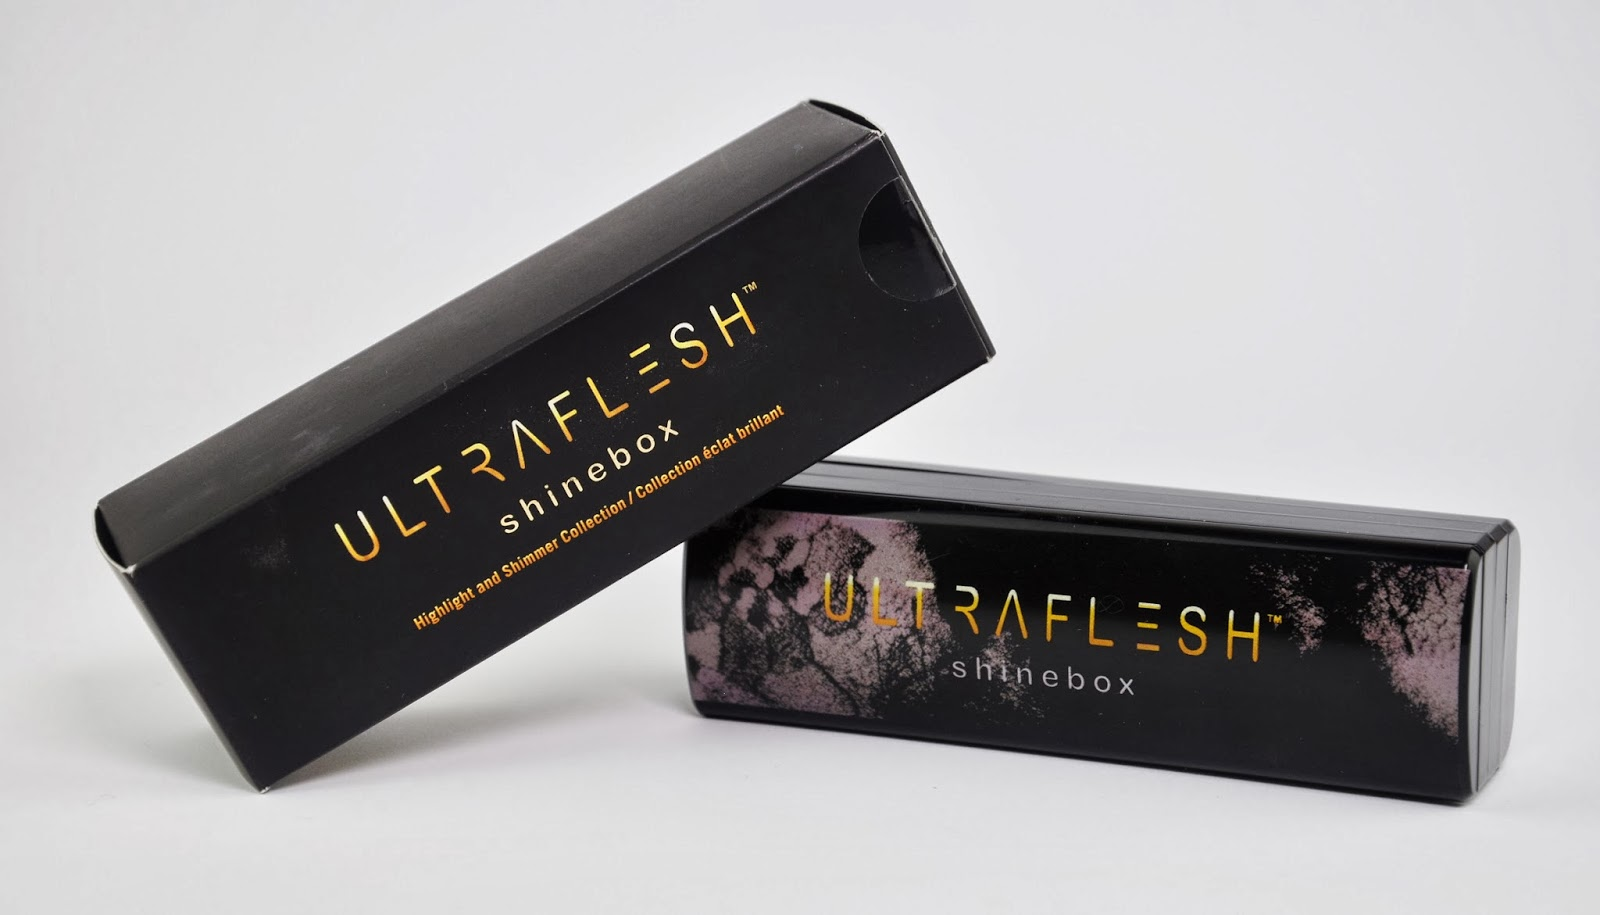 Ultraflesh Shinebox Highlight & Shimmer Collection Review & Swatches